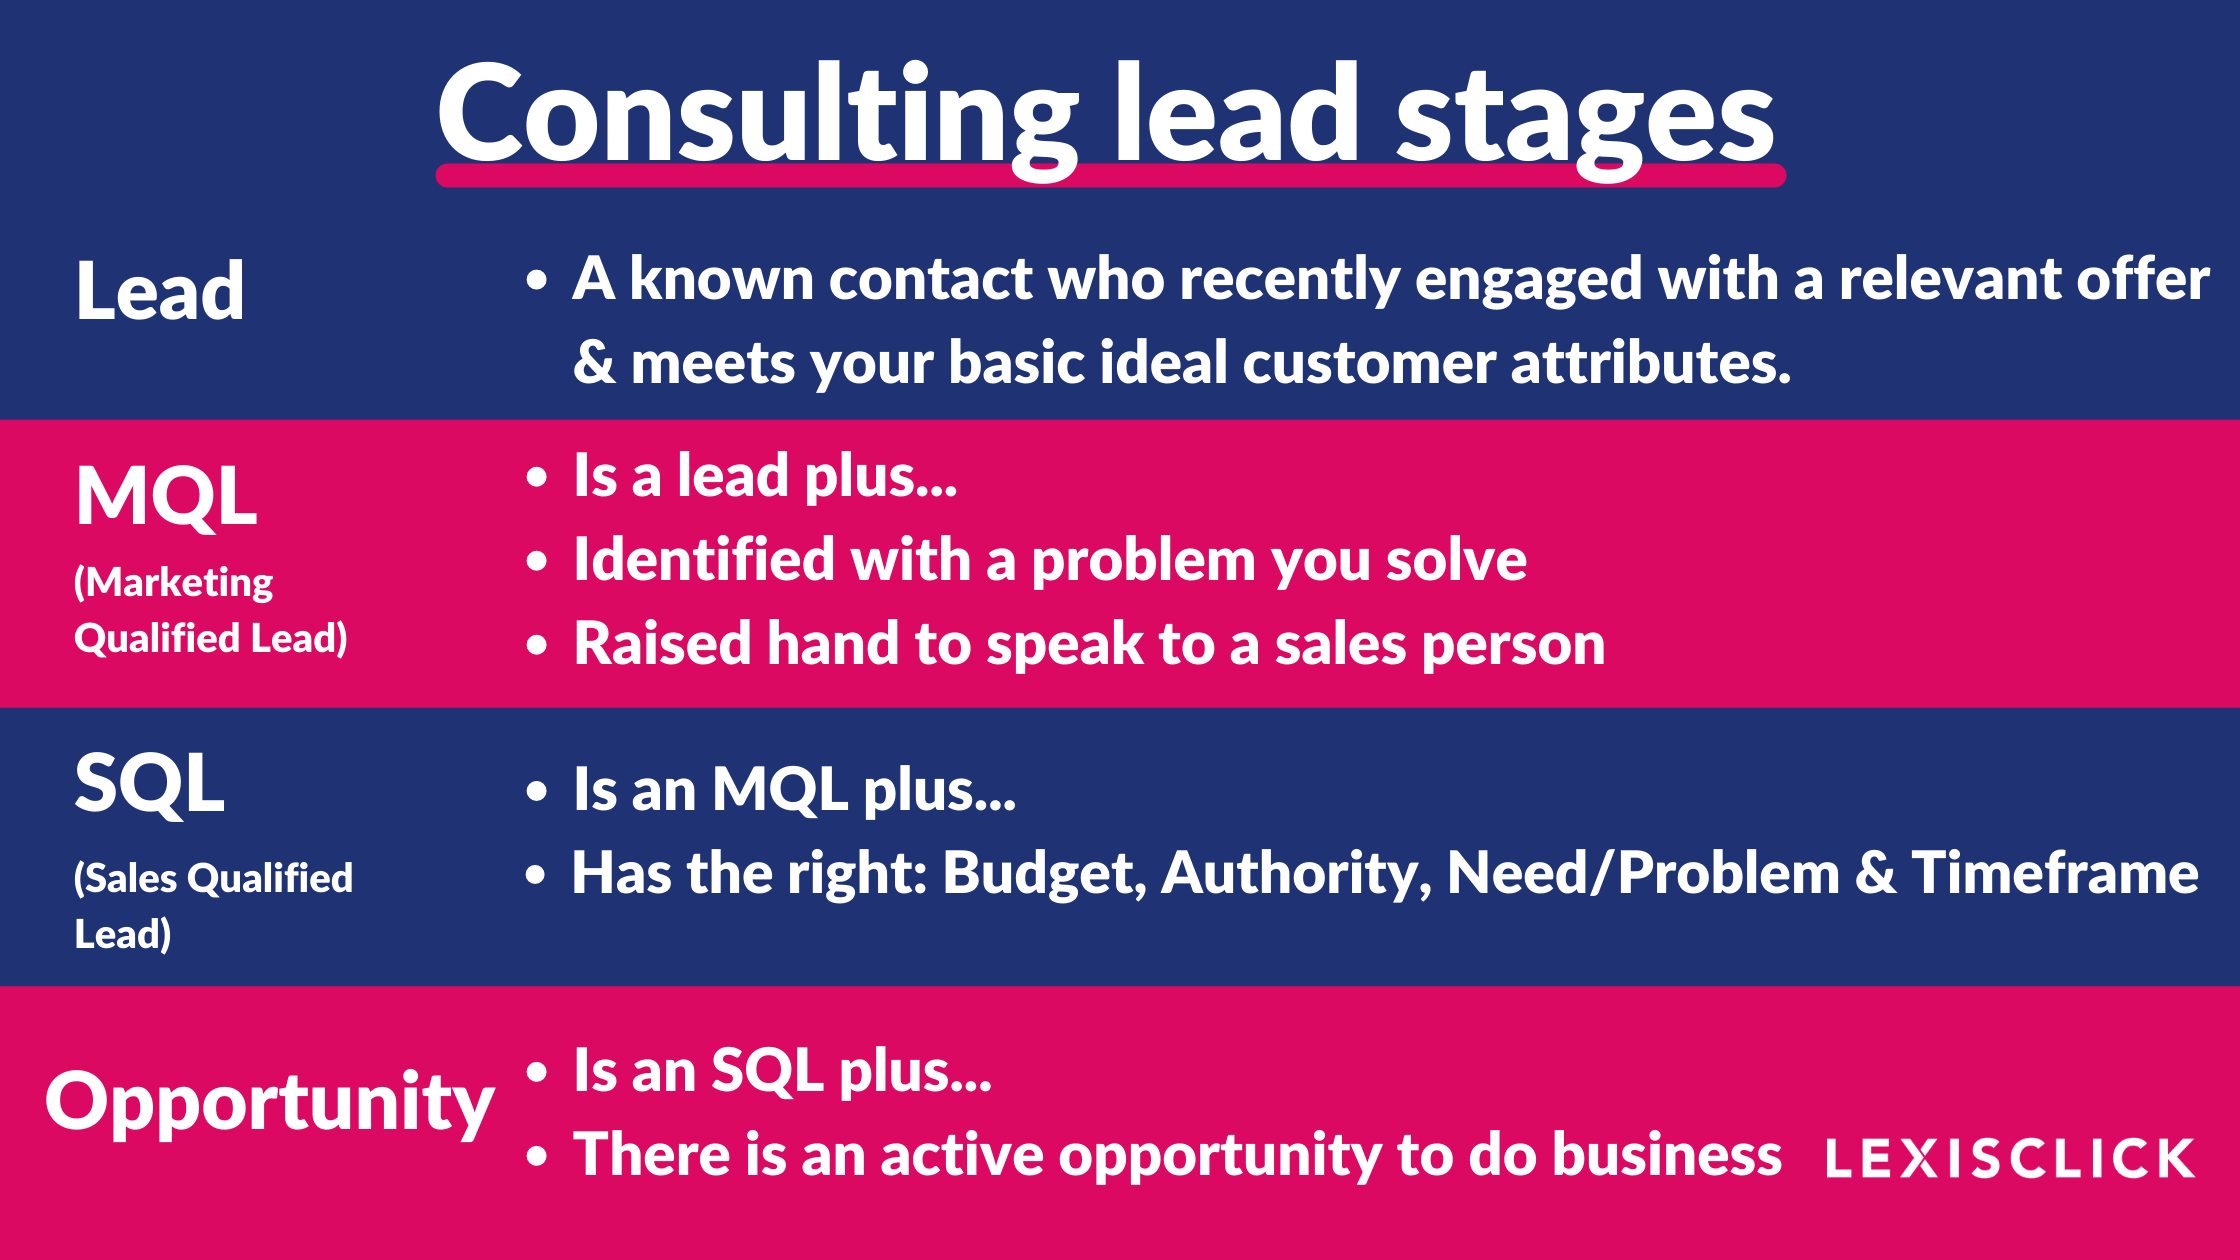 Consulting lead stages (1)